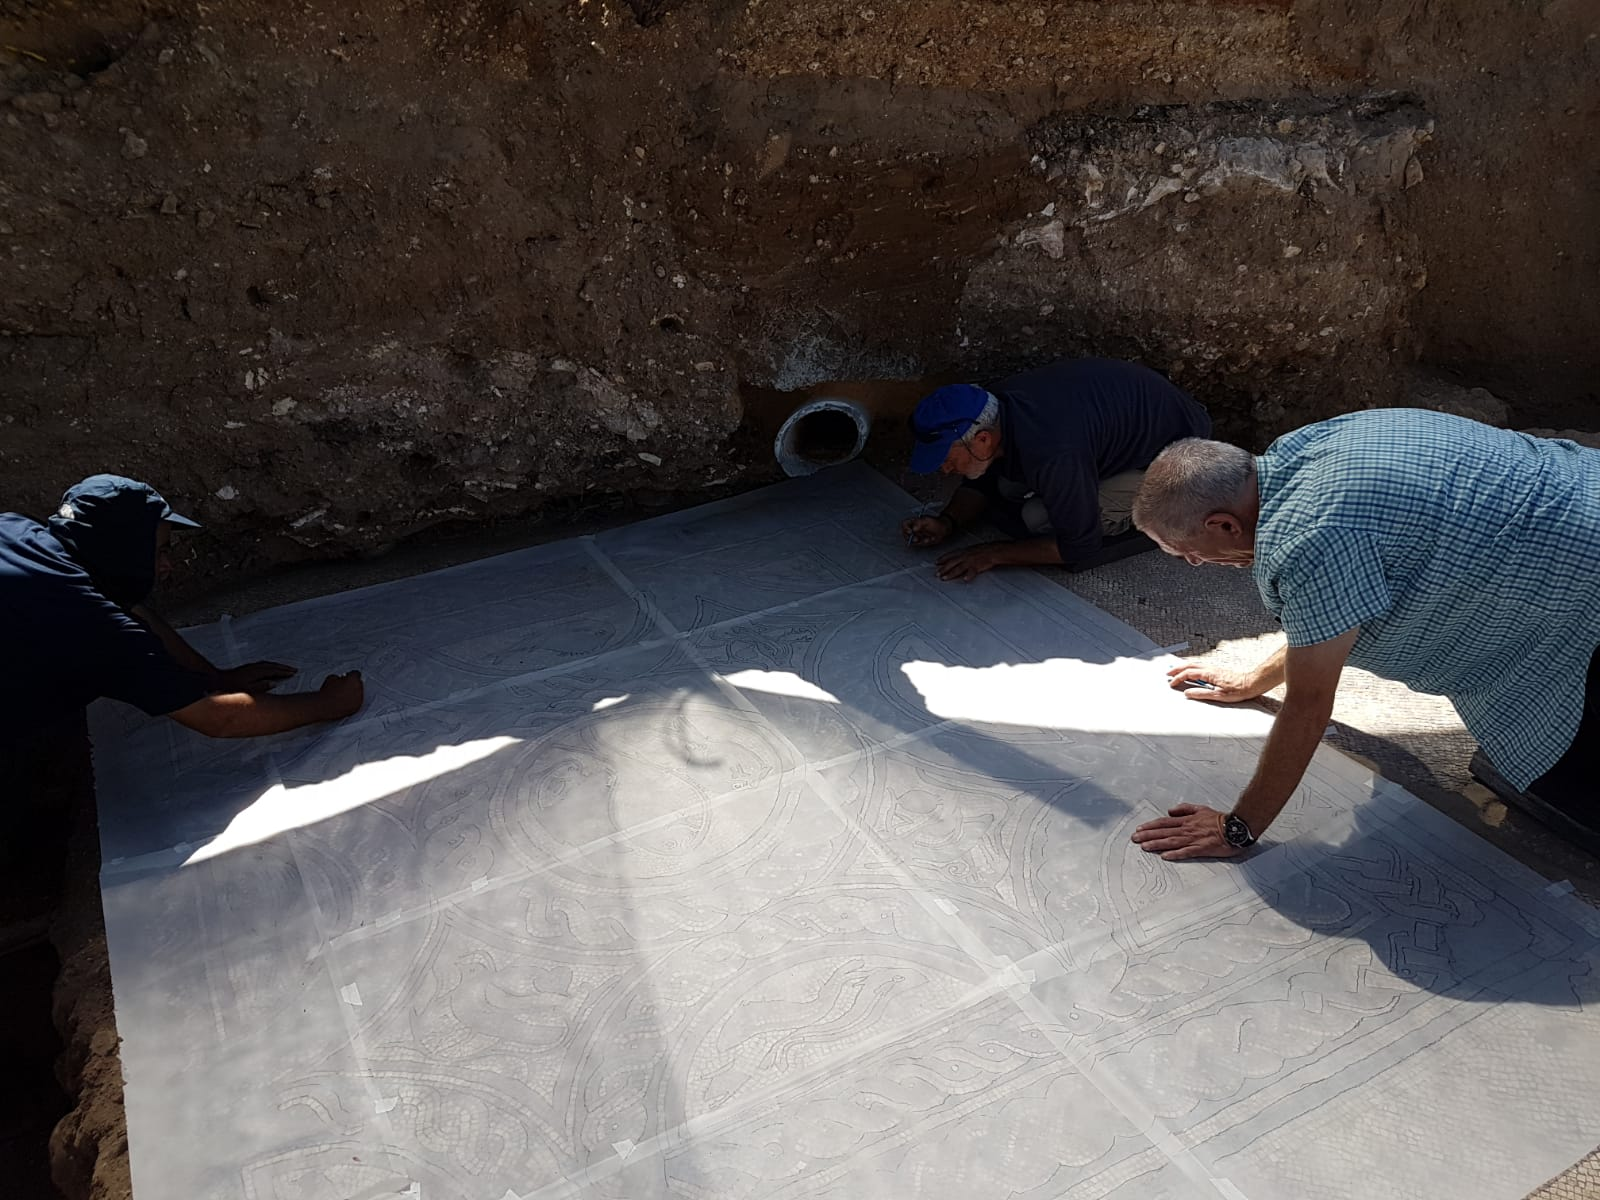 The conservation experts prepare to remove the mosaic for conservation. When the Visitors' Center is erected the mosaic will be displayed.  Photos: Raleb Abu Diab, IAA.